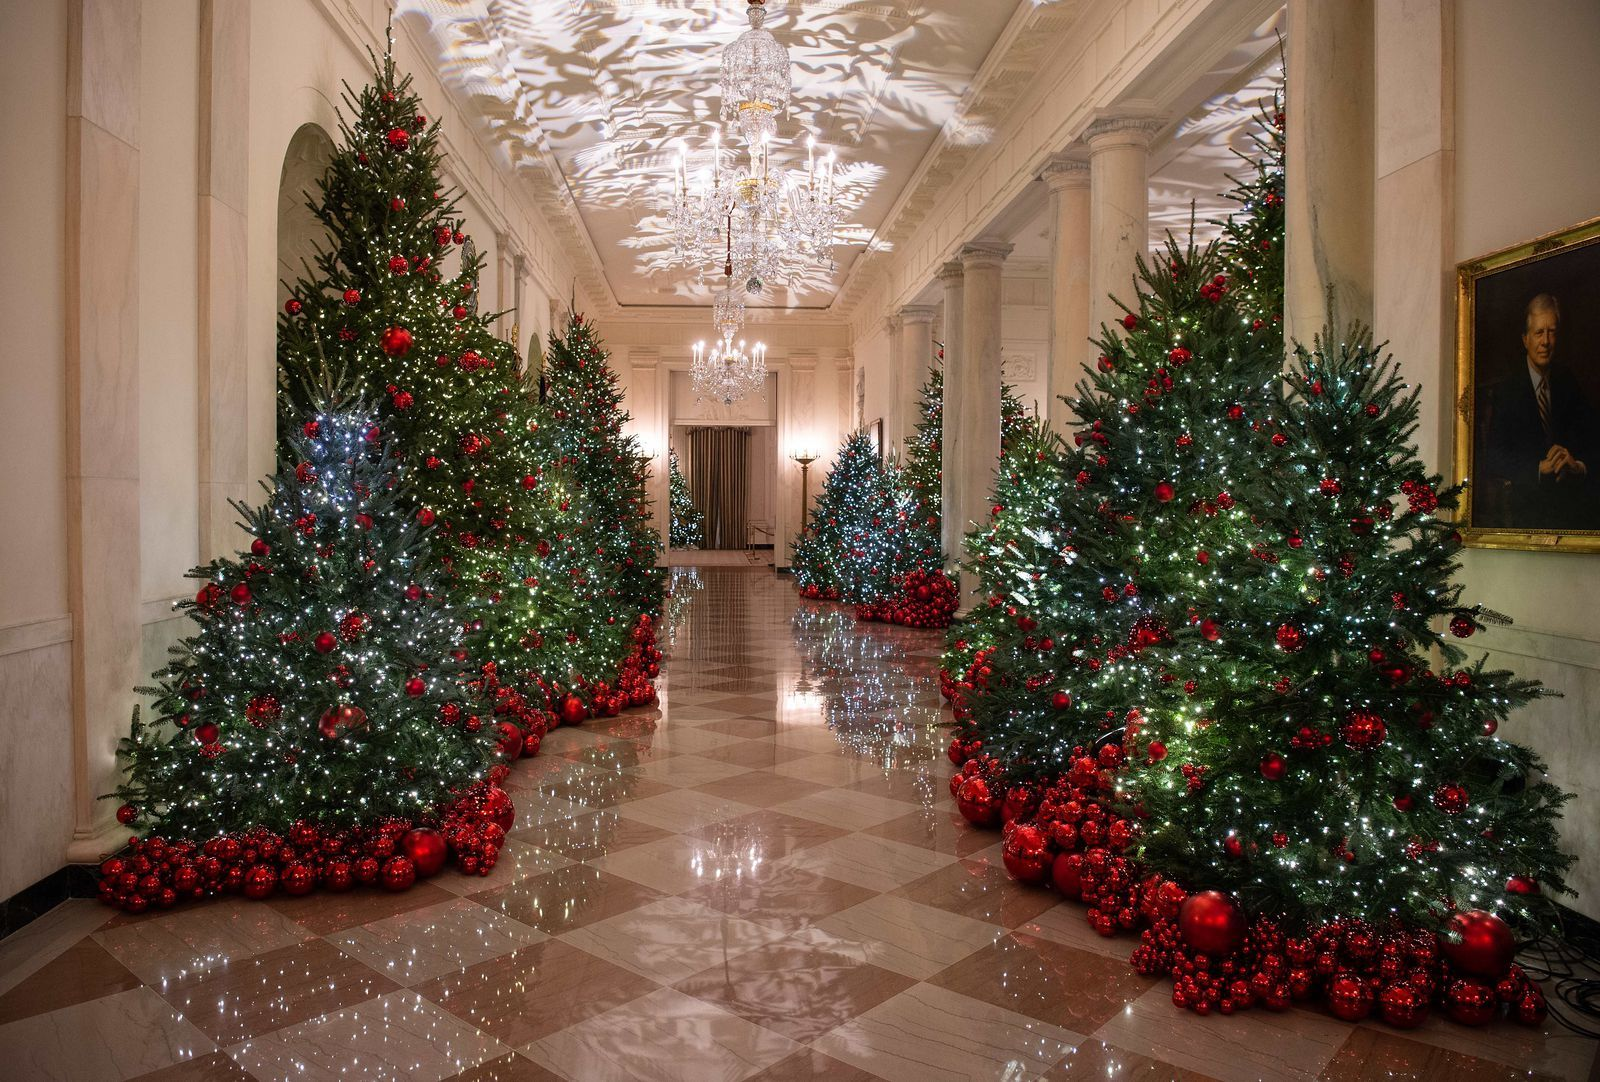 The 2018 White House Christmas Theme Is Very Red White House Christmas Tree White House Christmas Decorations White House Christmas